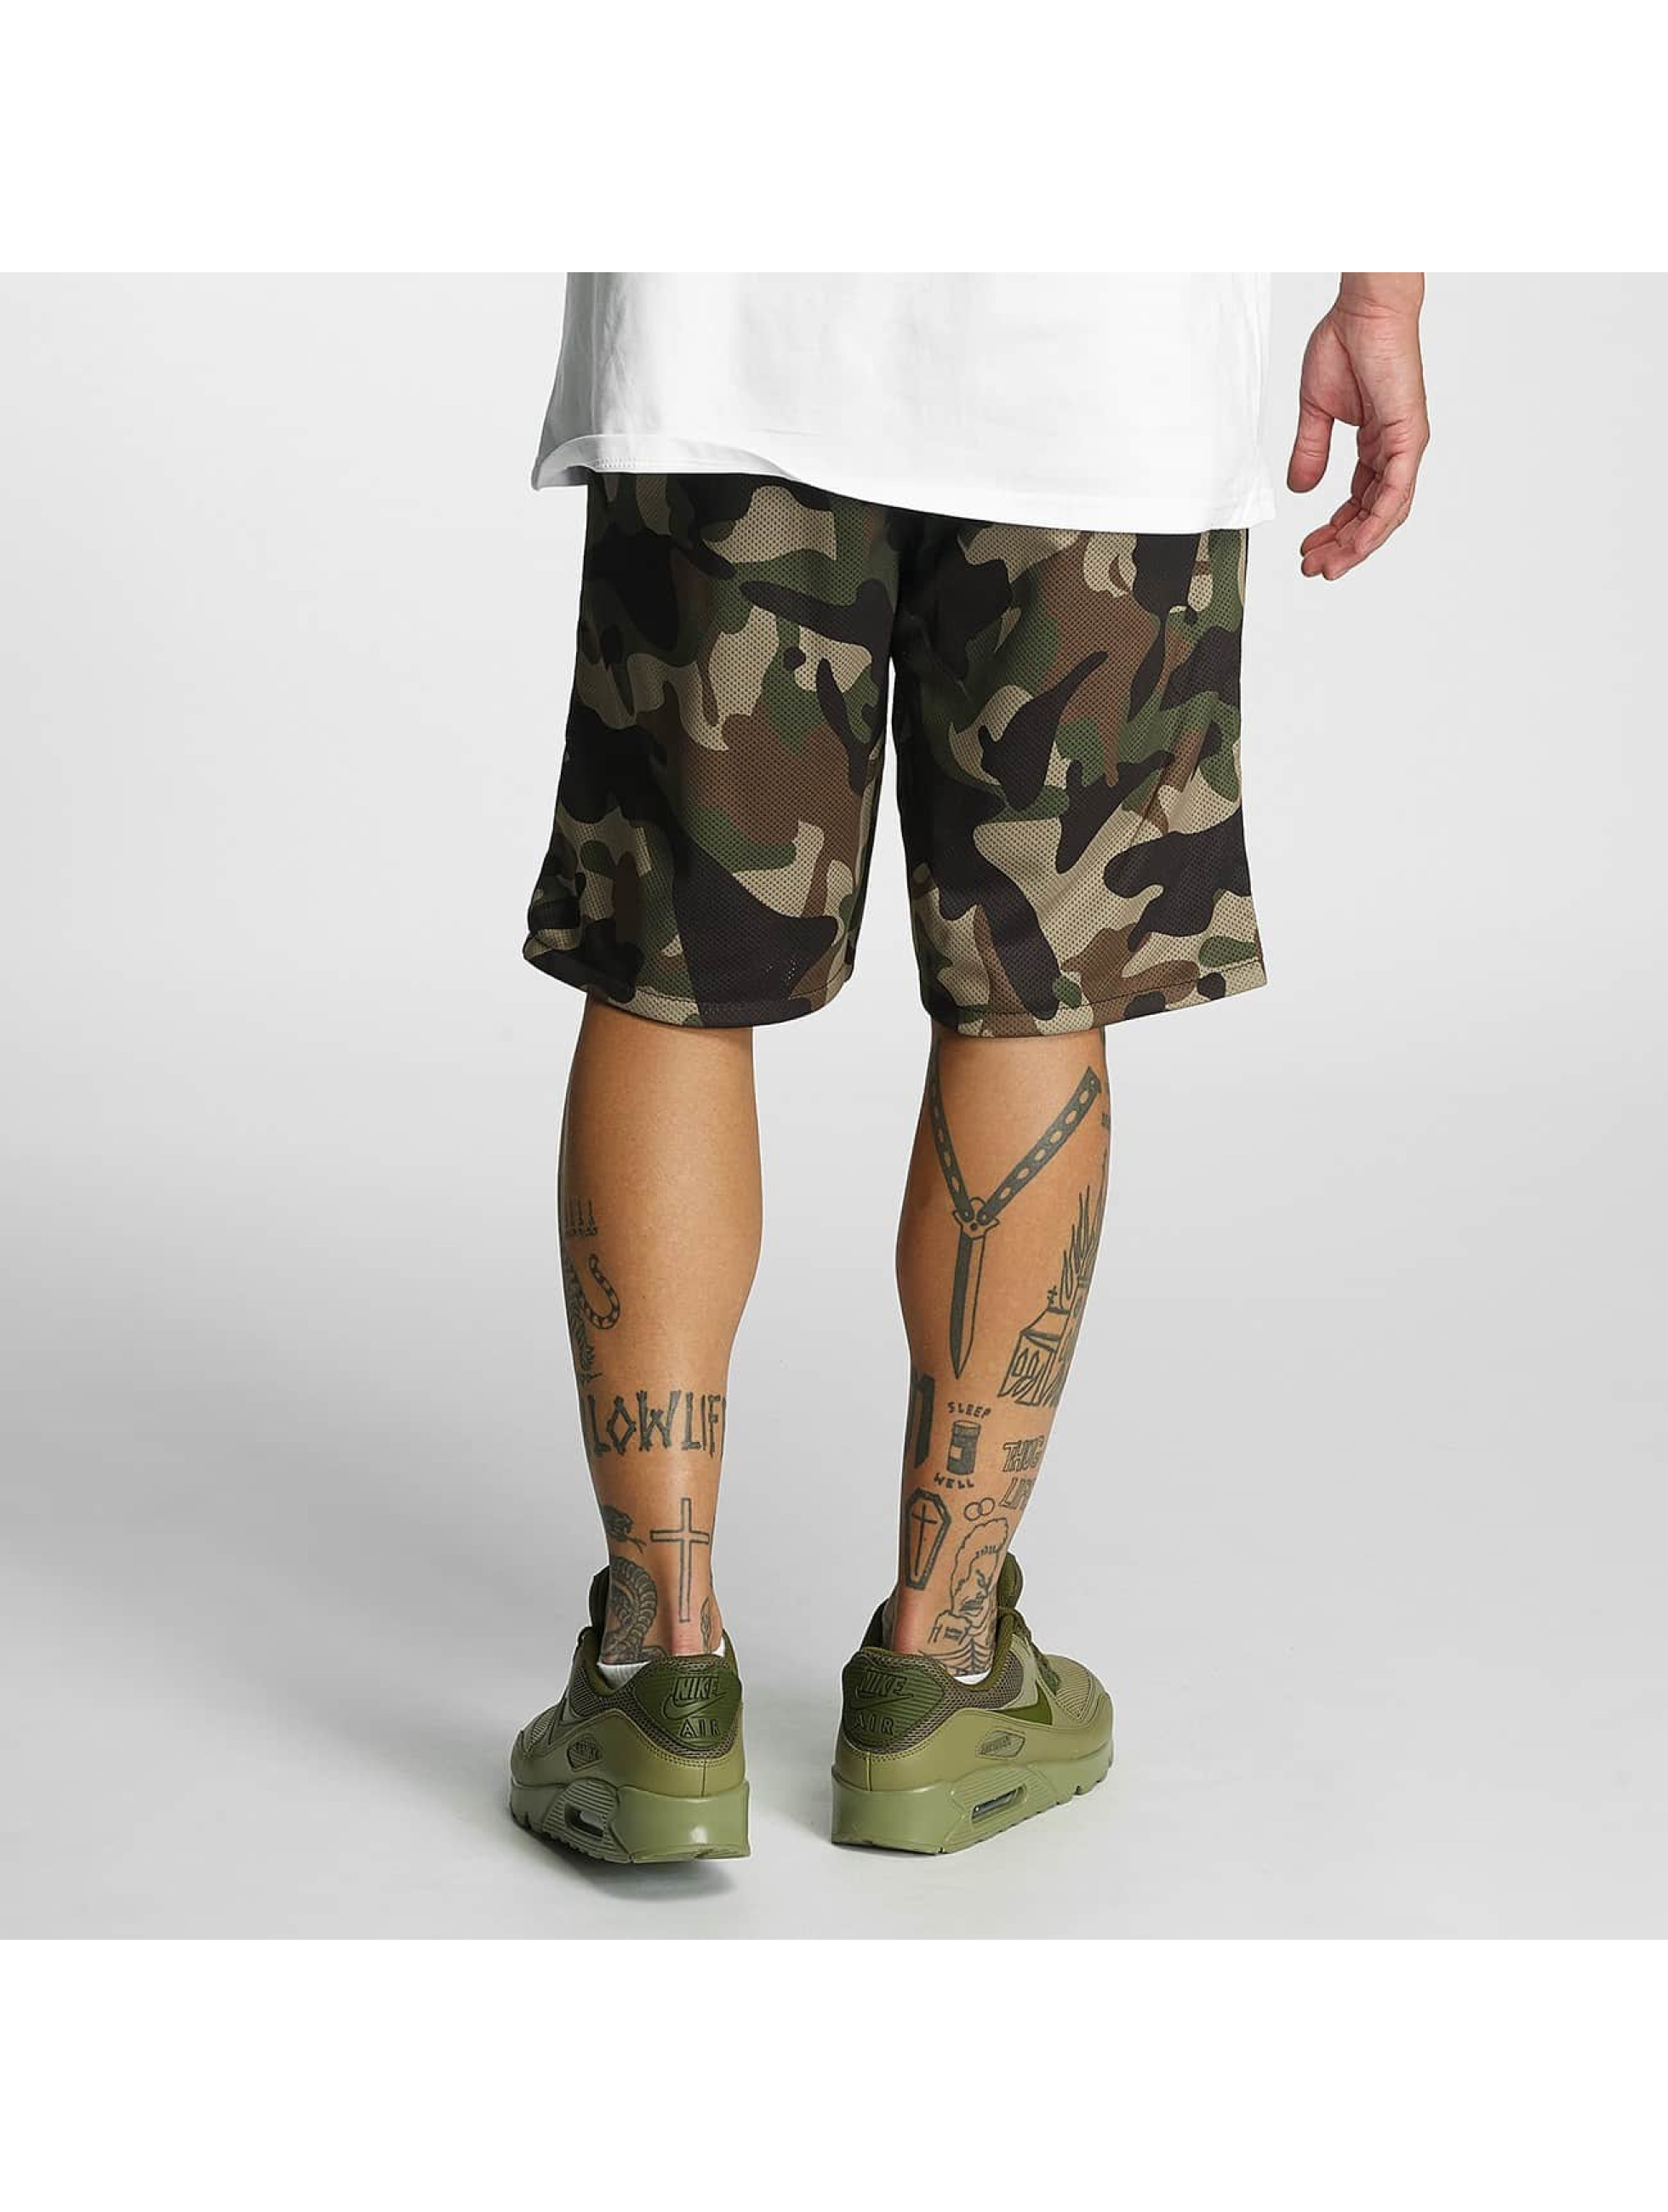 pelle pelle herren shorts combat in camouflage 318898. Black Bedroom Furniture Sets. Home Design Ideas